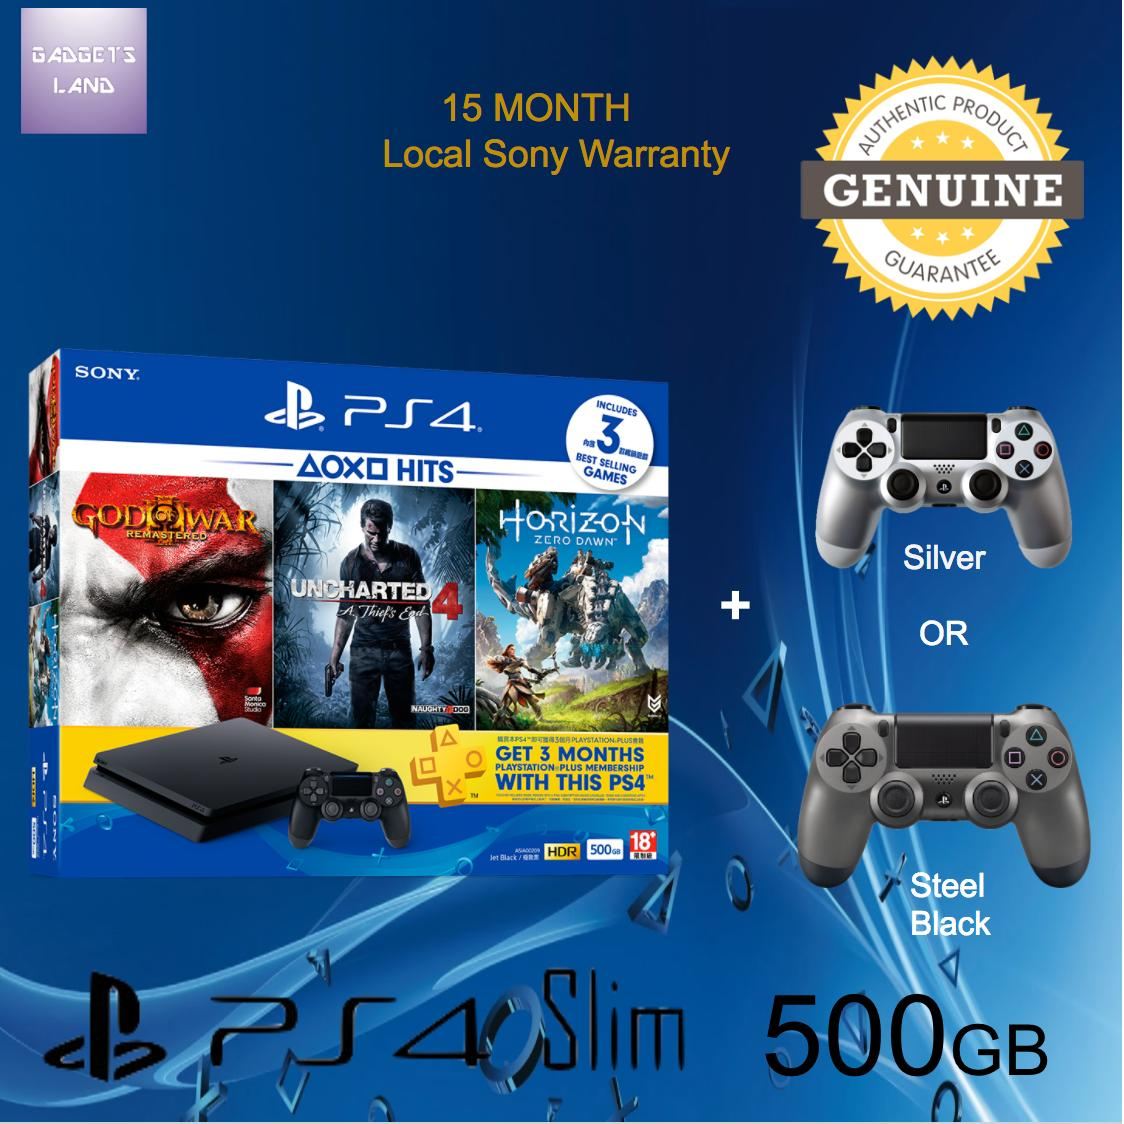 Playstation 4 Slim 500gb Cuh 2006a B01 Jet Black Batman 3 Beyond Sony Garansi Hits Bundle Ps4 With 15 Months Warranty And Extra Controller